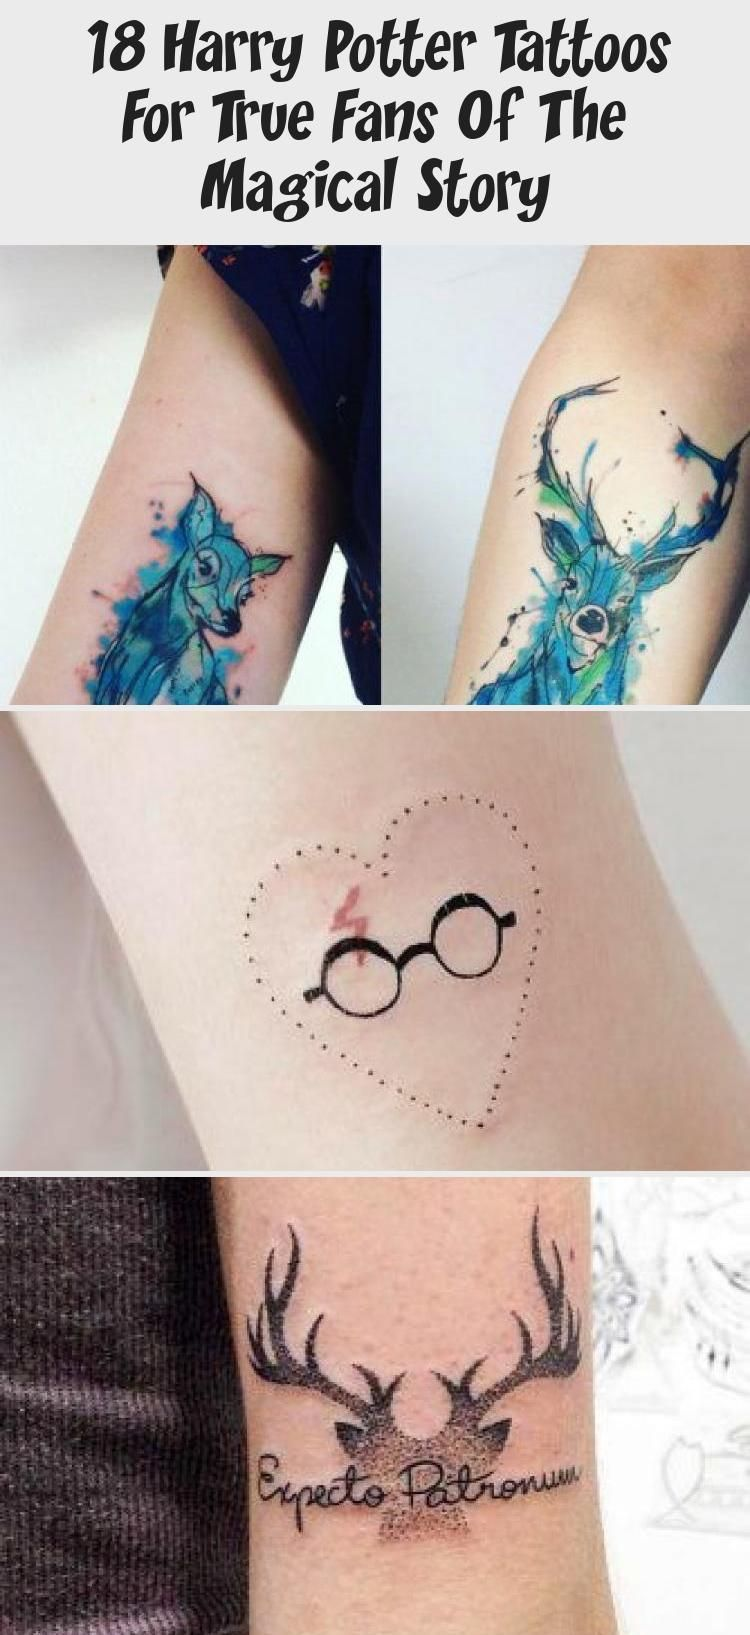 18 Harry Potter Tattoos For True Fans Of The Magical Story Tattoos Fans Harry Magical Kleines Tattoo Blog